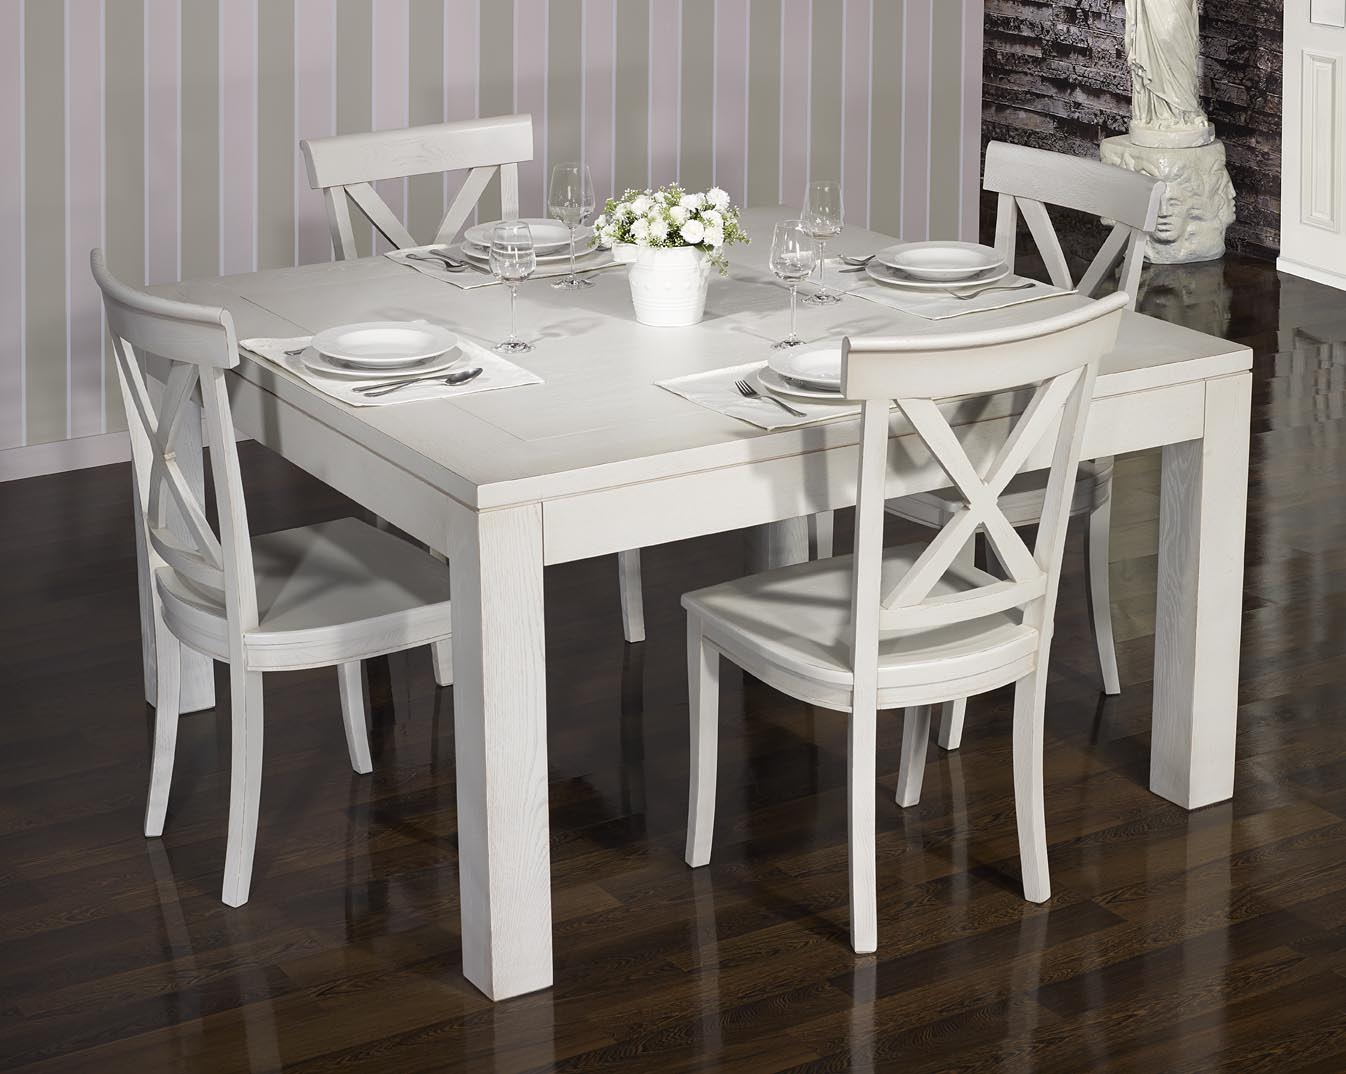 Table de salle manger 140 140 contemporaine en ch ne for Table salle a manger carree blanche